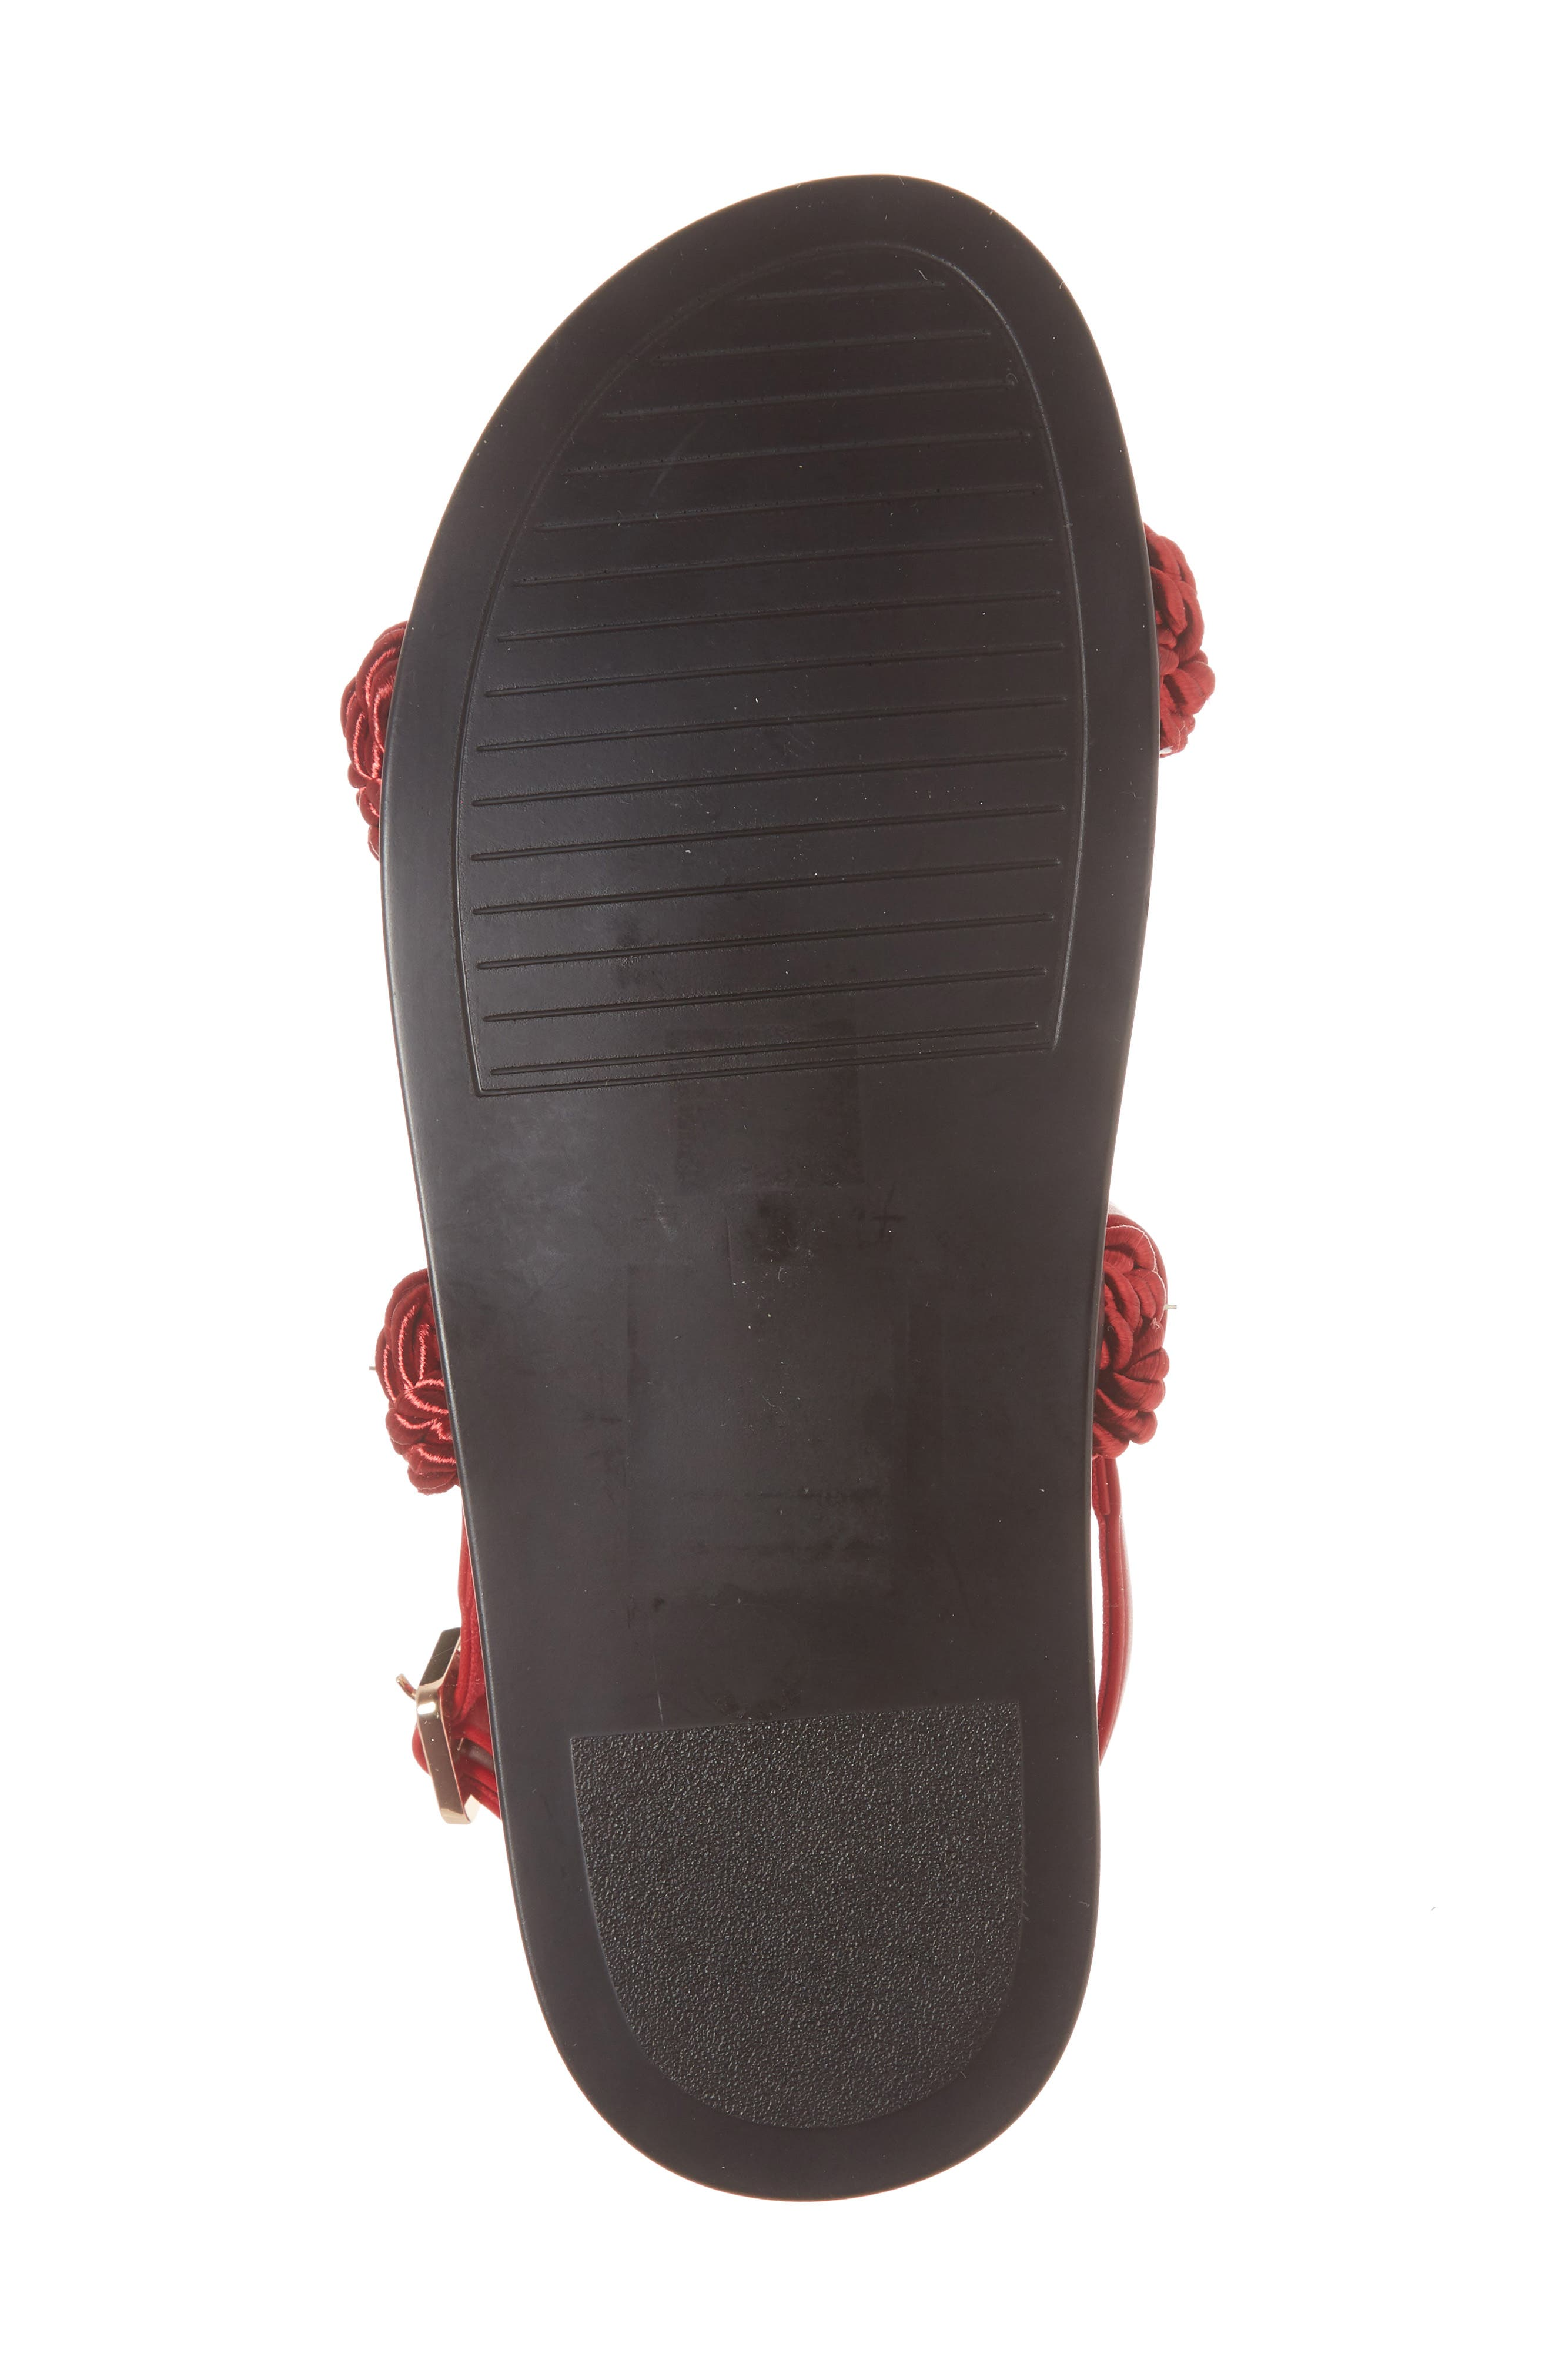 Hackney Rope Footbed Sandals,                             Alternate thumbnail 6, color,                             Red